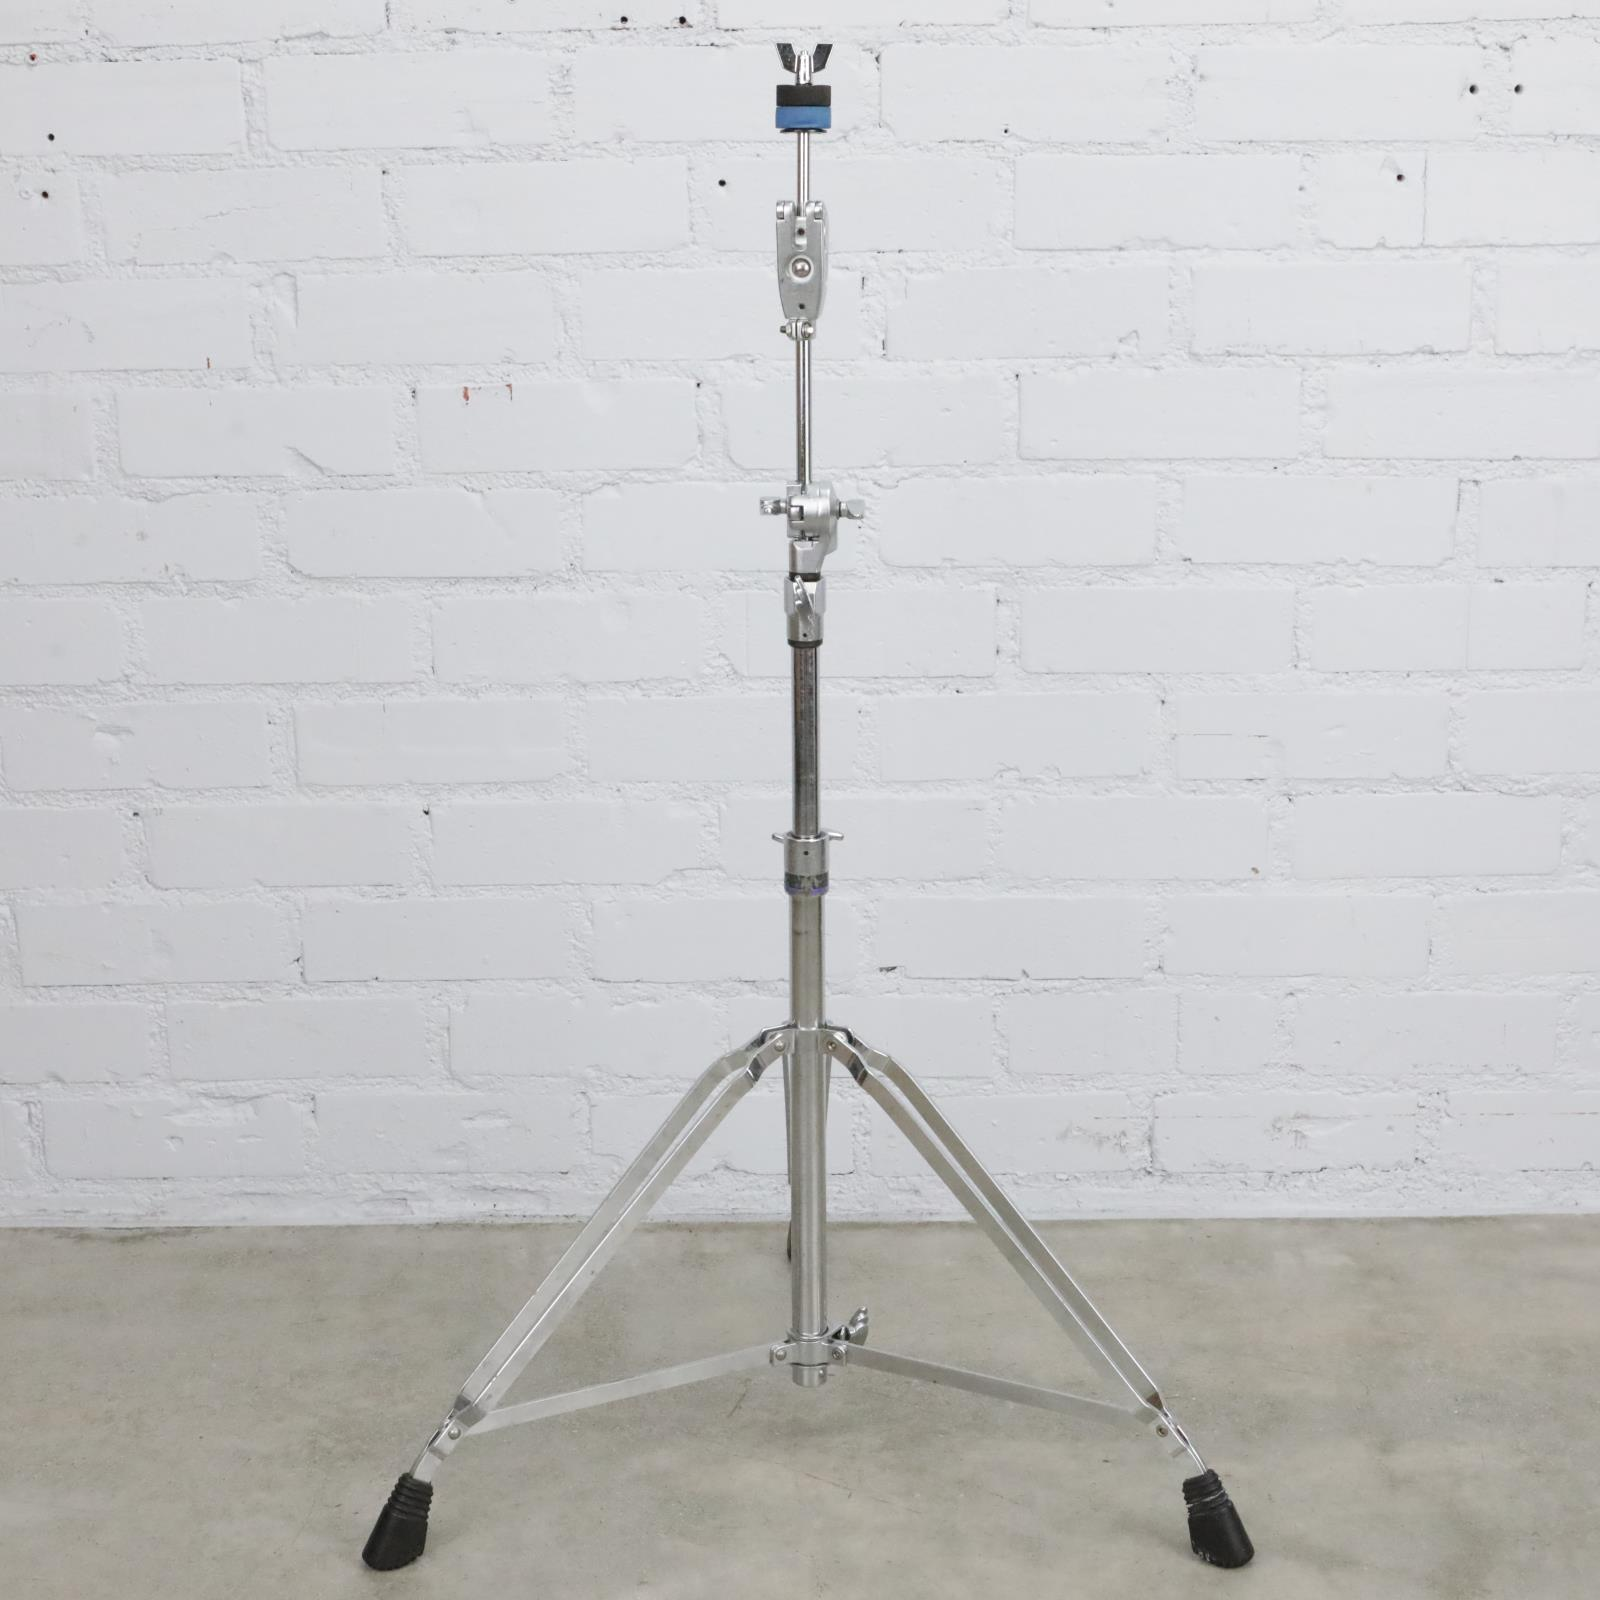 Yamaha Double Braced Straight Cymbal Stand w/ Step Free Tilter #41149